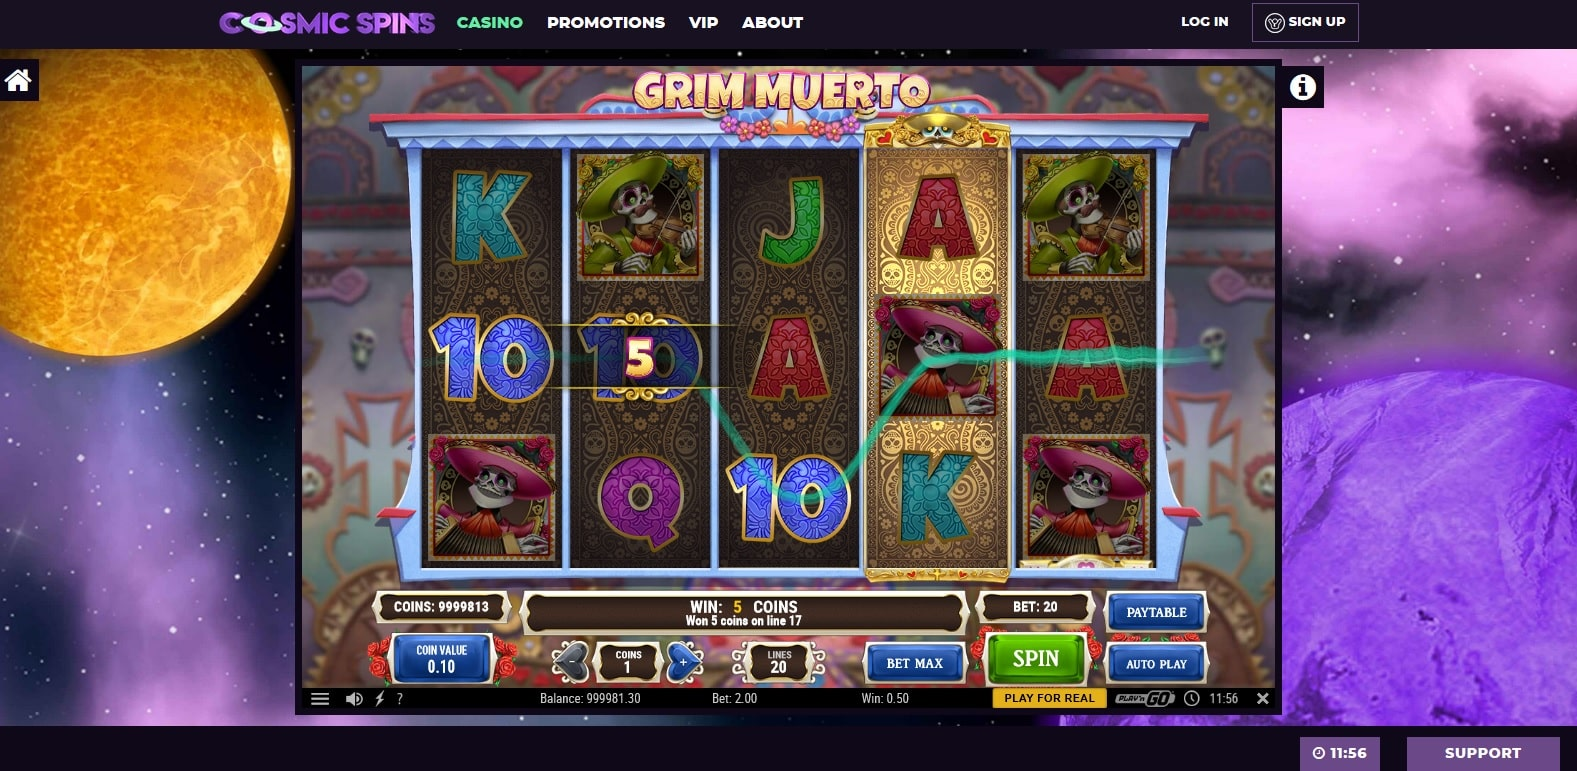 cosmic spins casino gameplay grim muerto slot